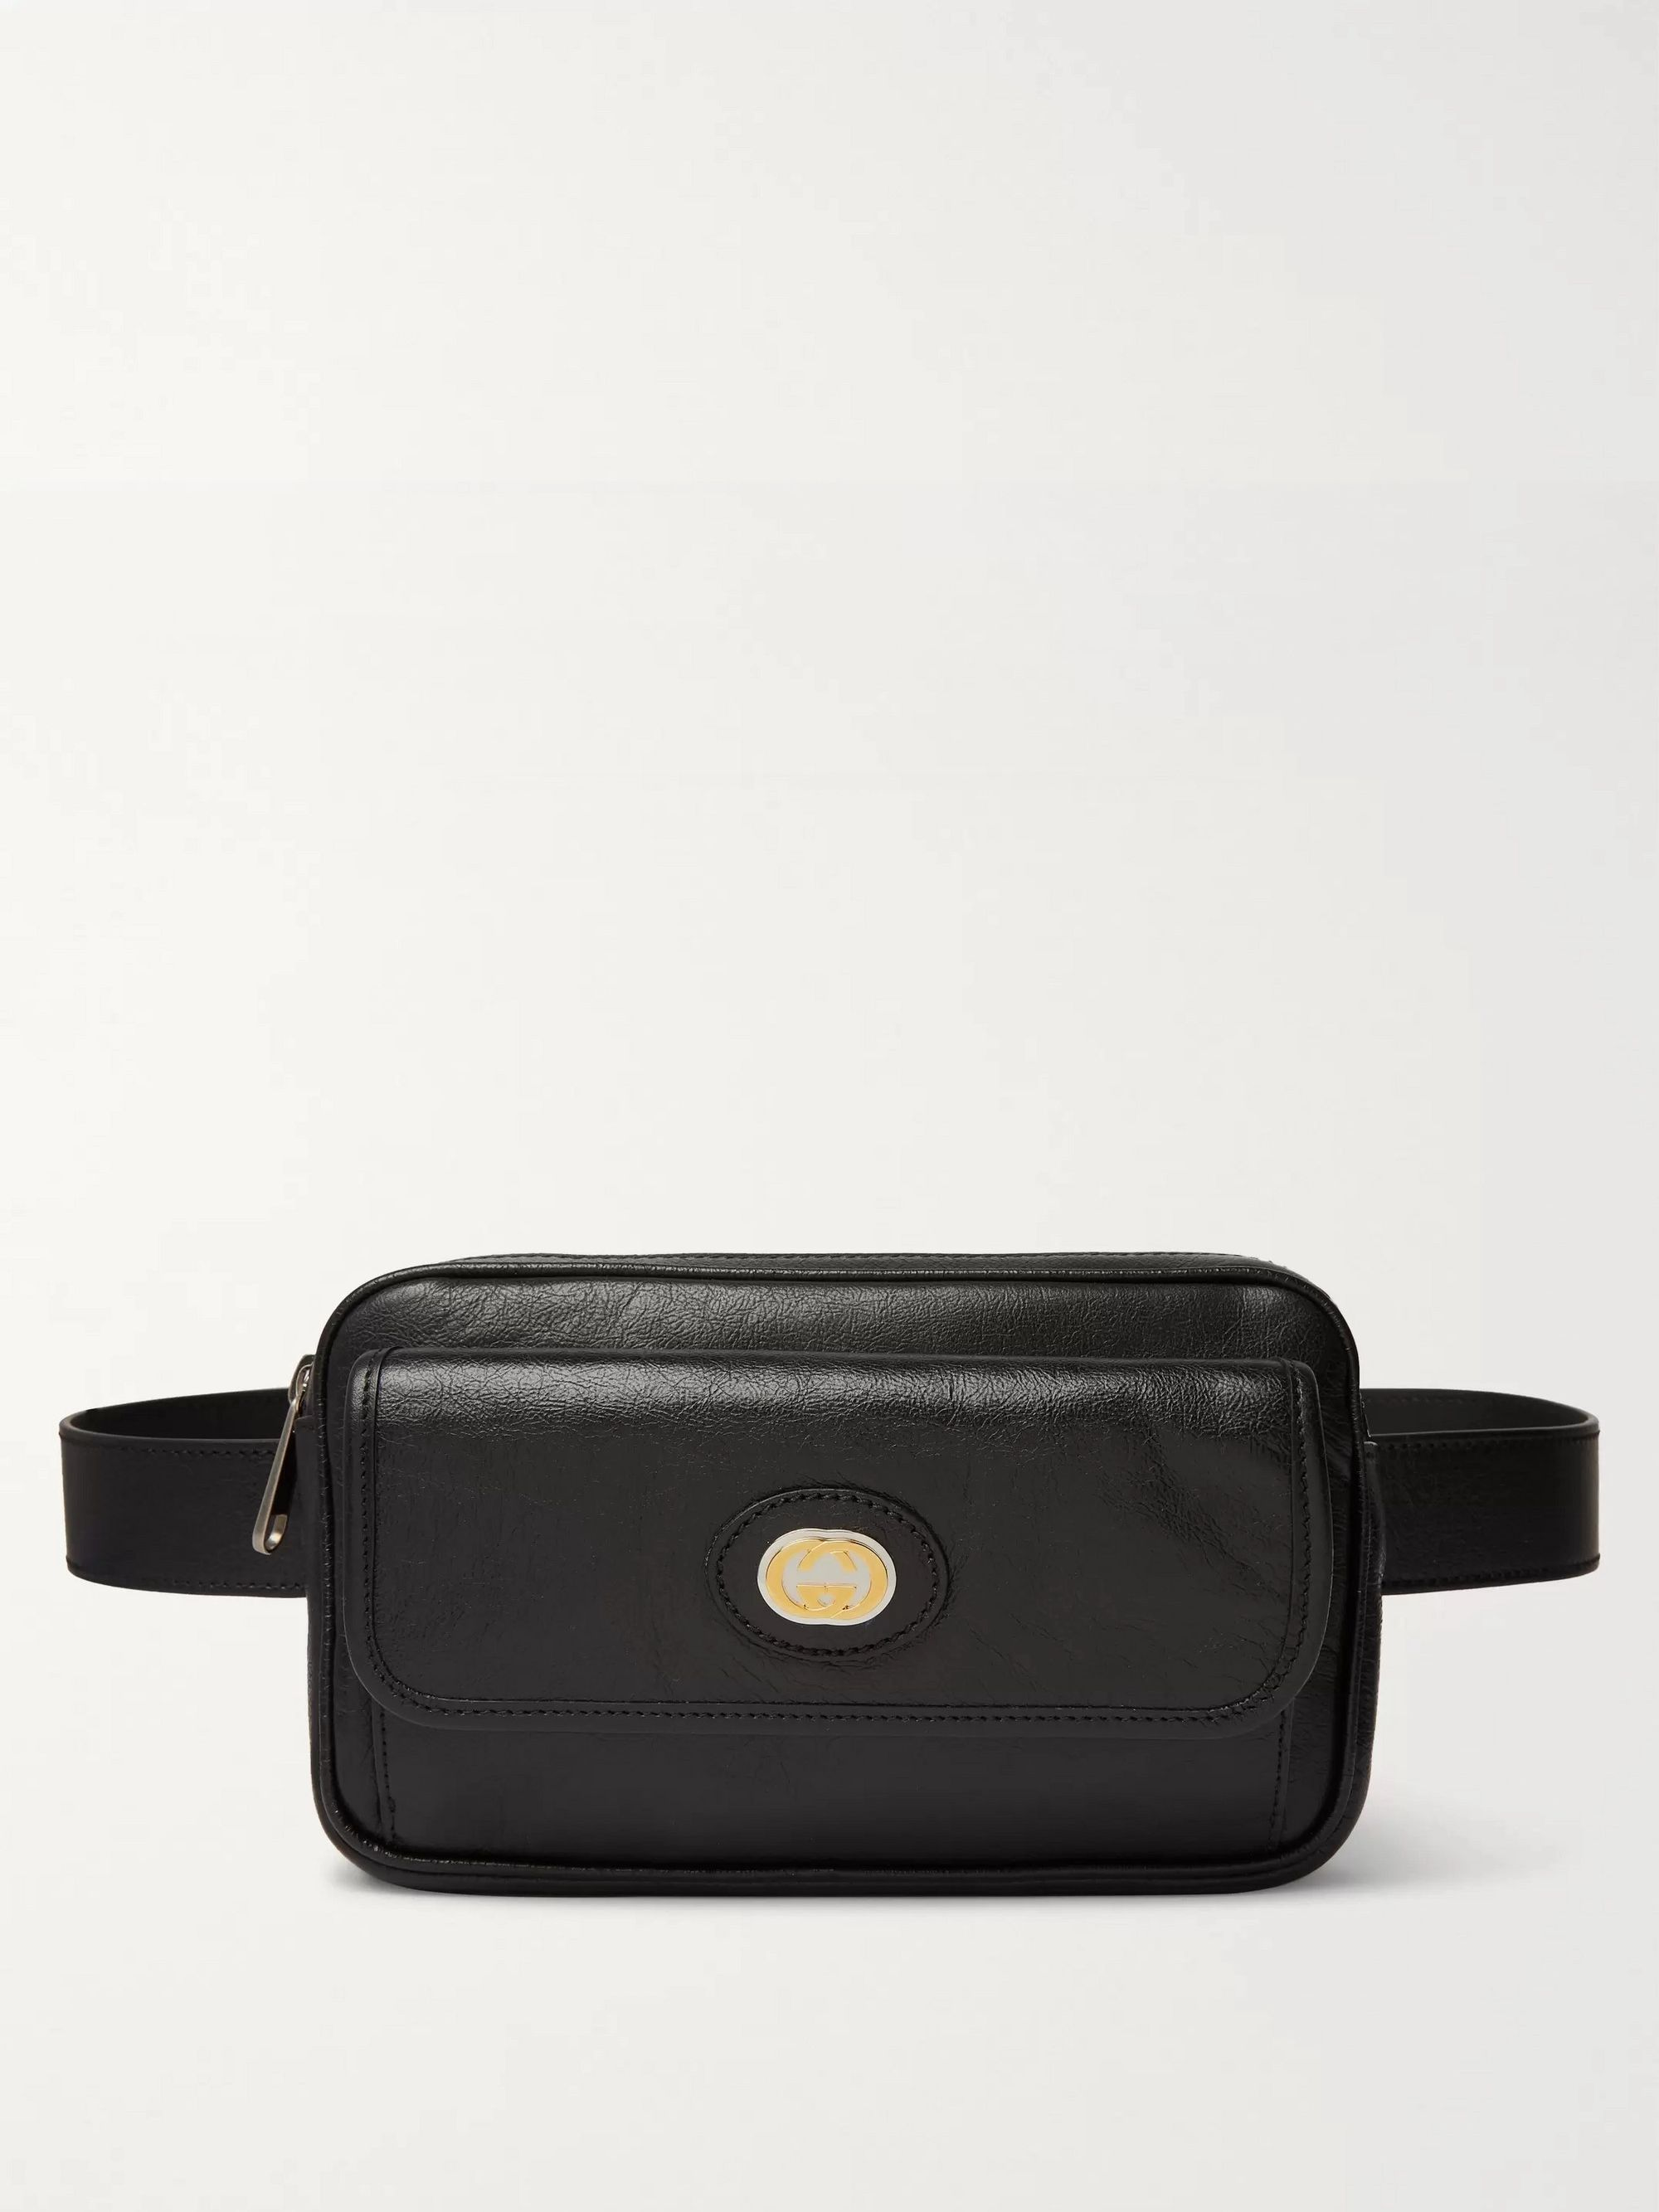 Gucci Morpheus Textured-Leather Belt Bag